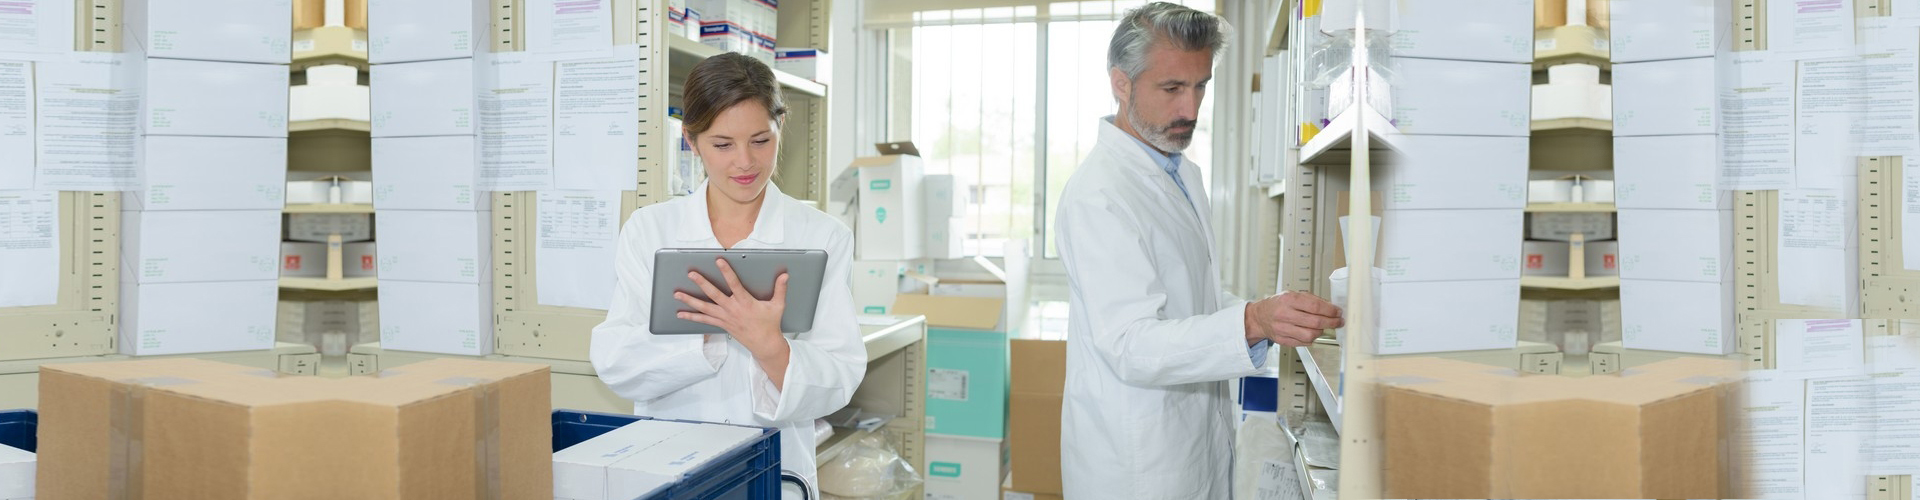 two pharmacists checking the inventory